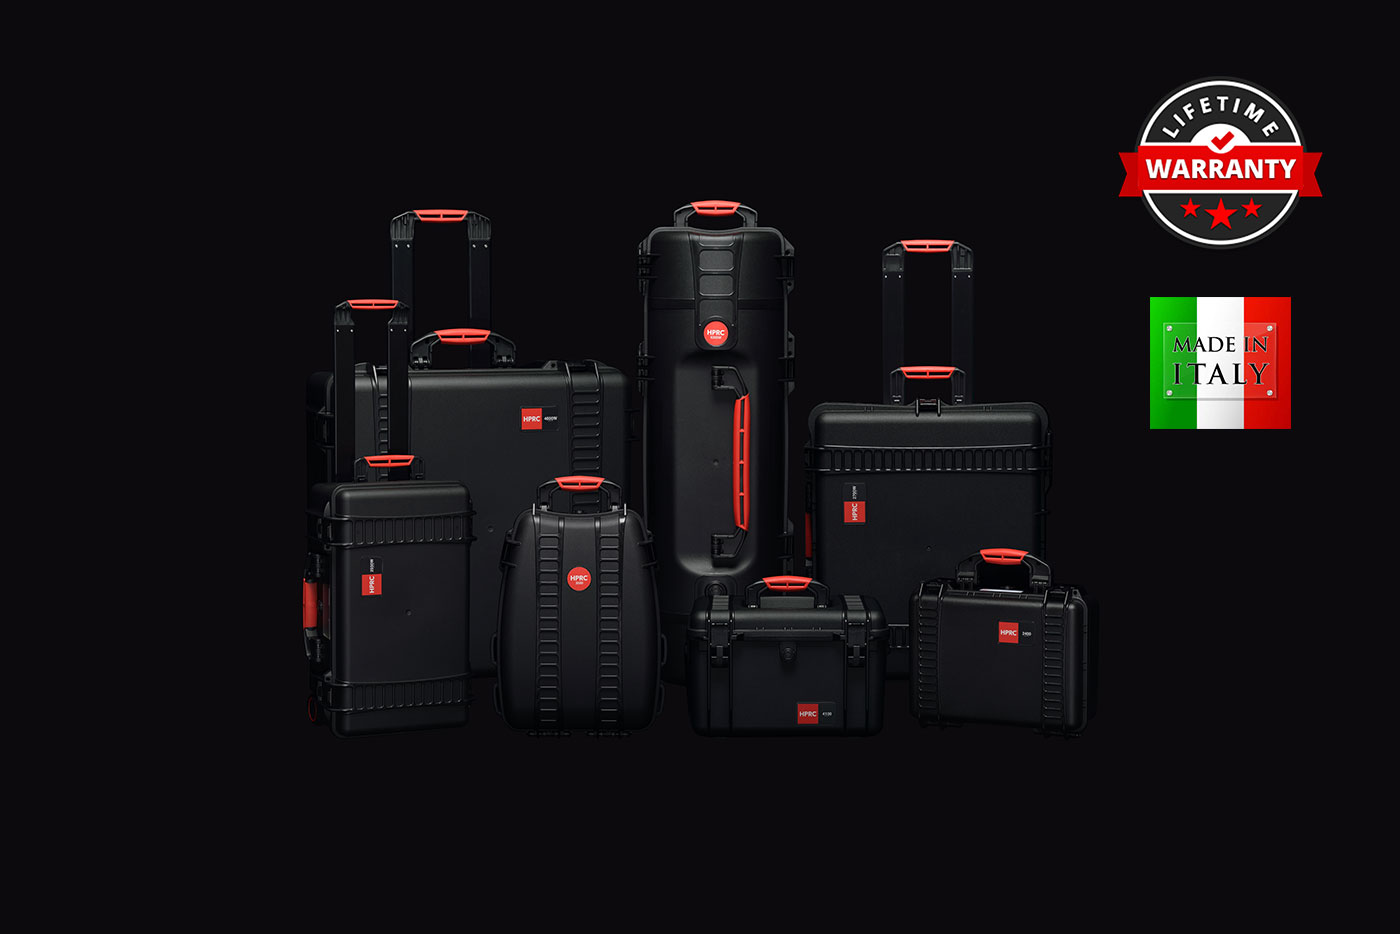 HPRC Cases - High Performance Resin Cases with a Lifetime Warranty